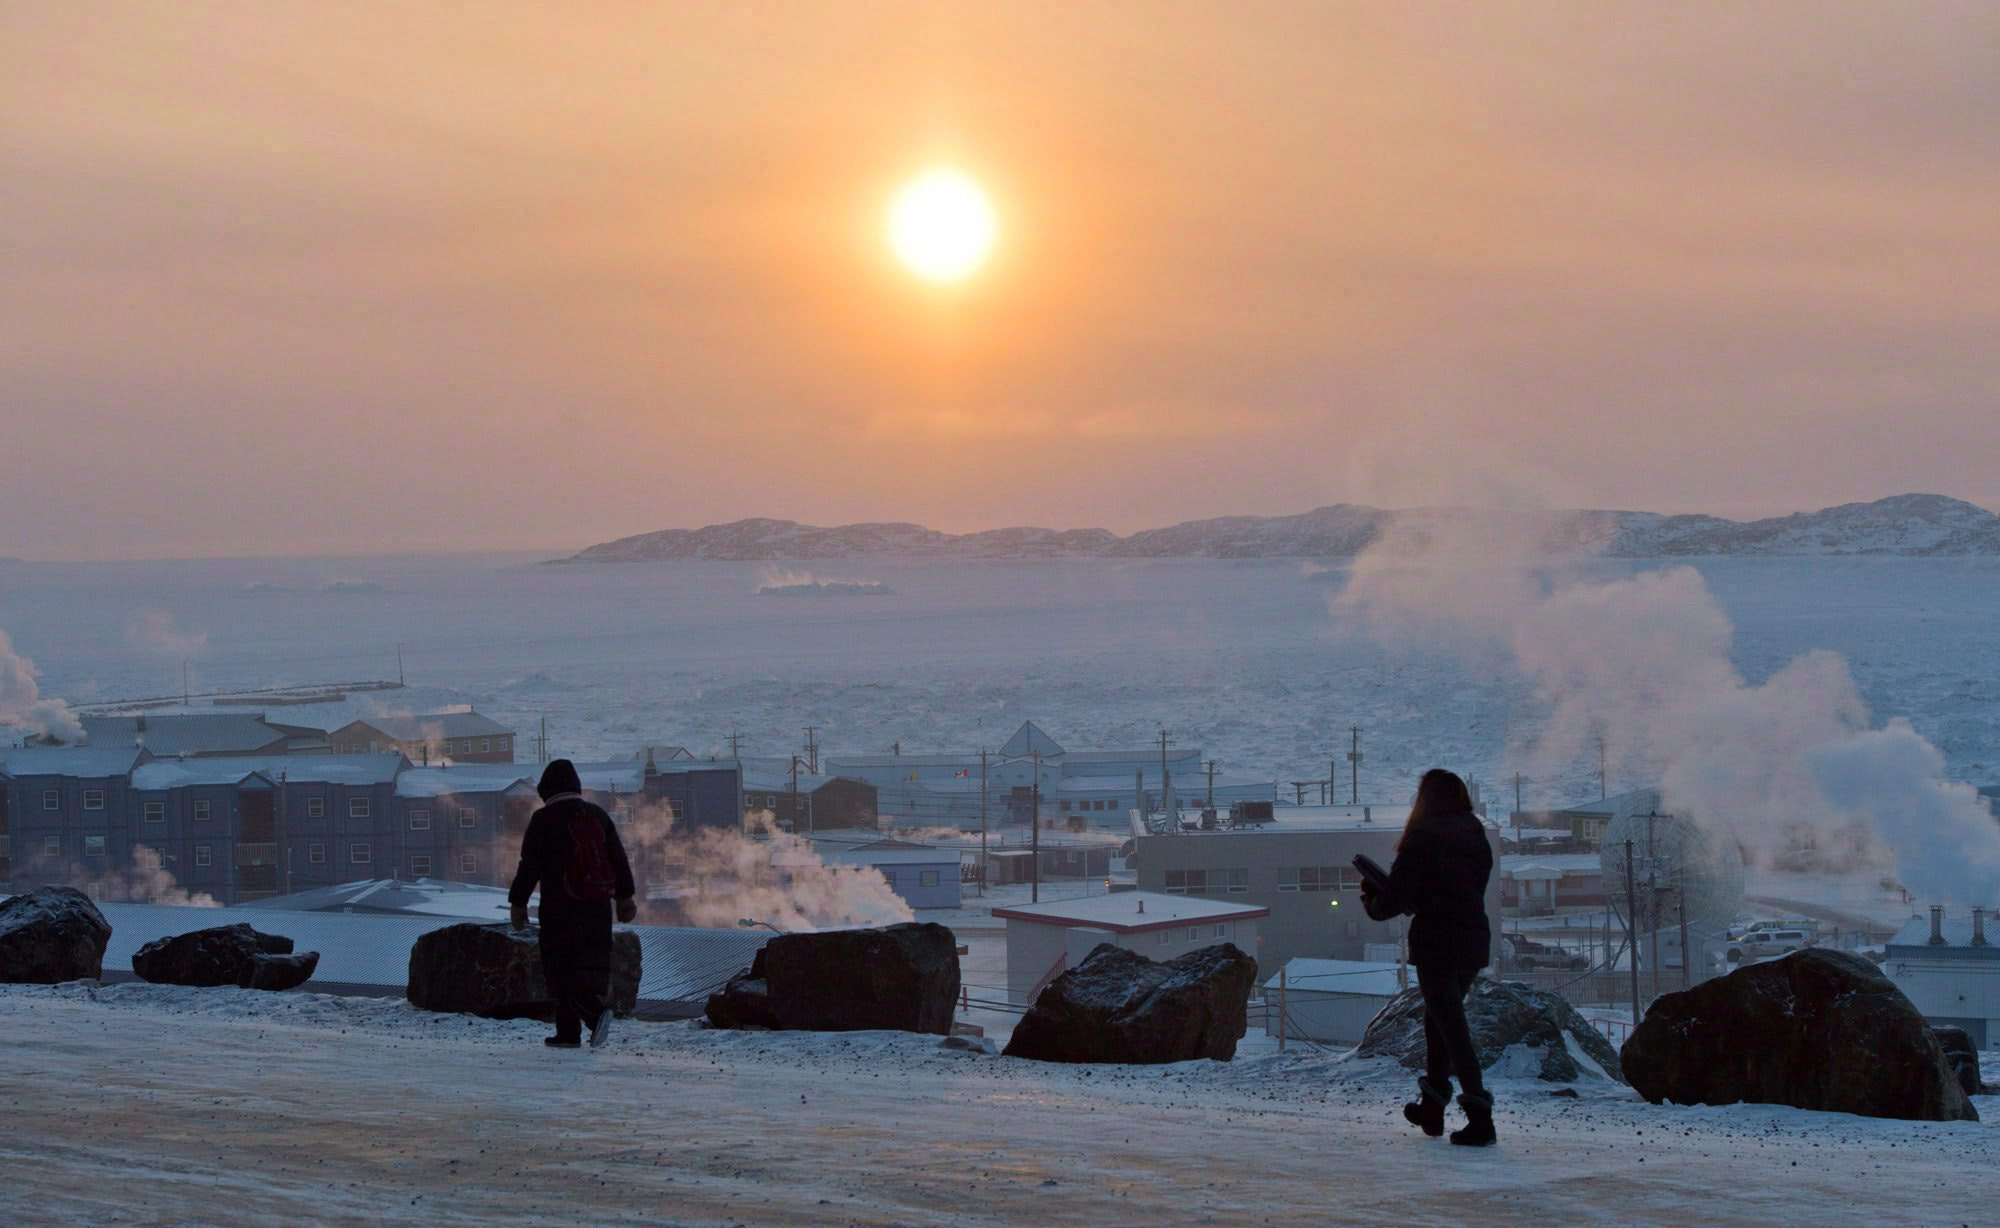 People walk along a path in Iqaluit, Nunavut in December 2014. - The Canadian Press